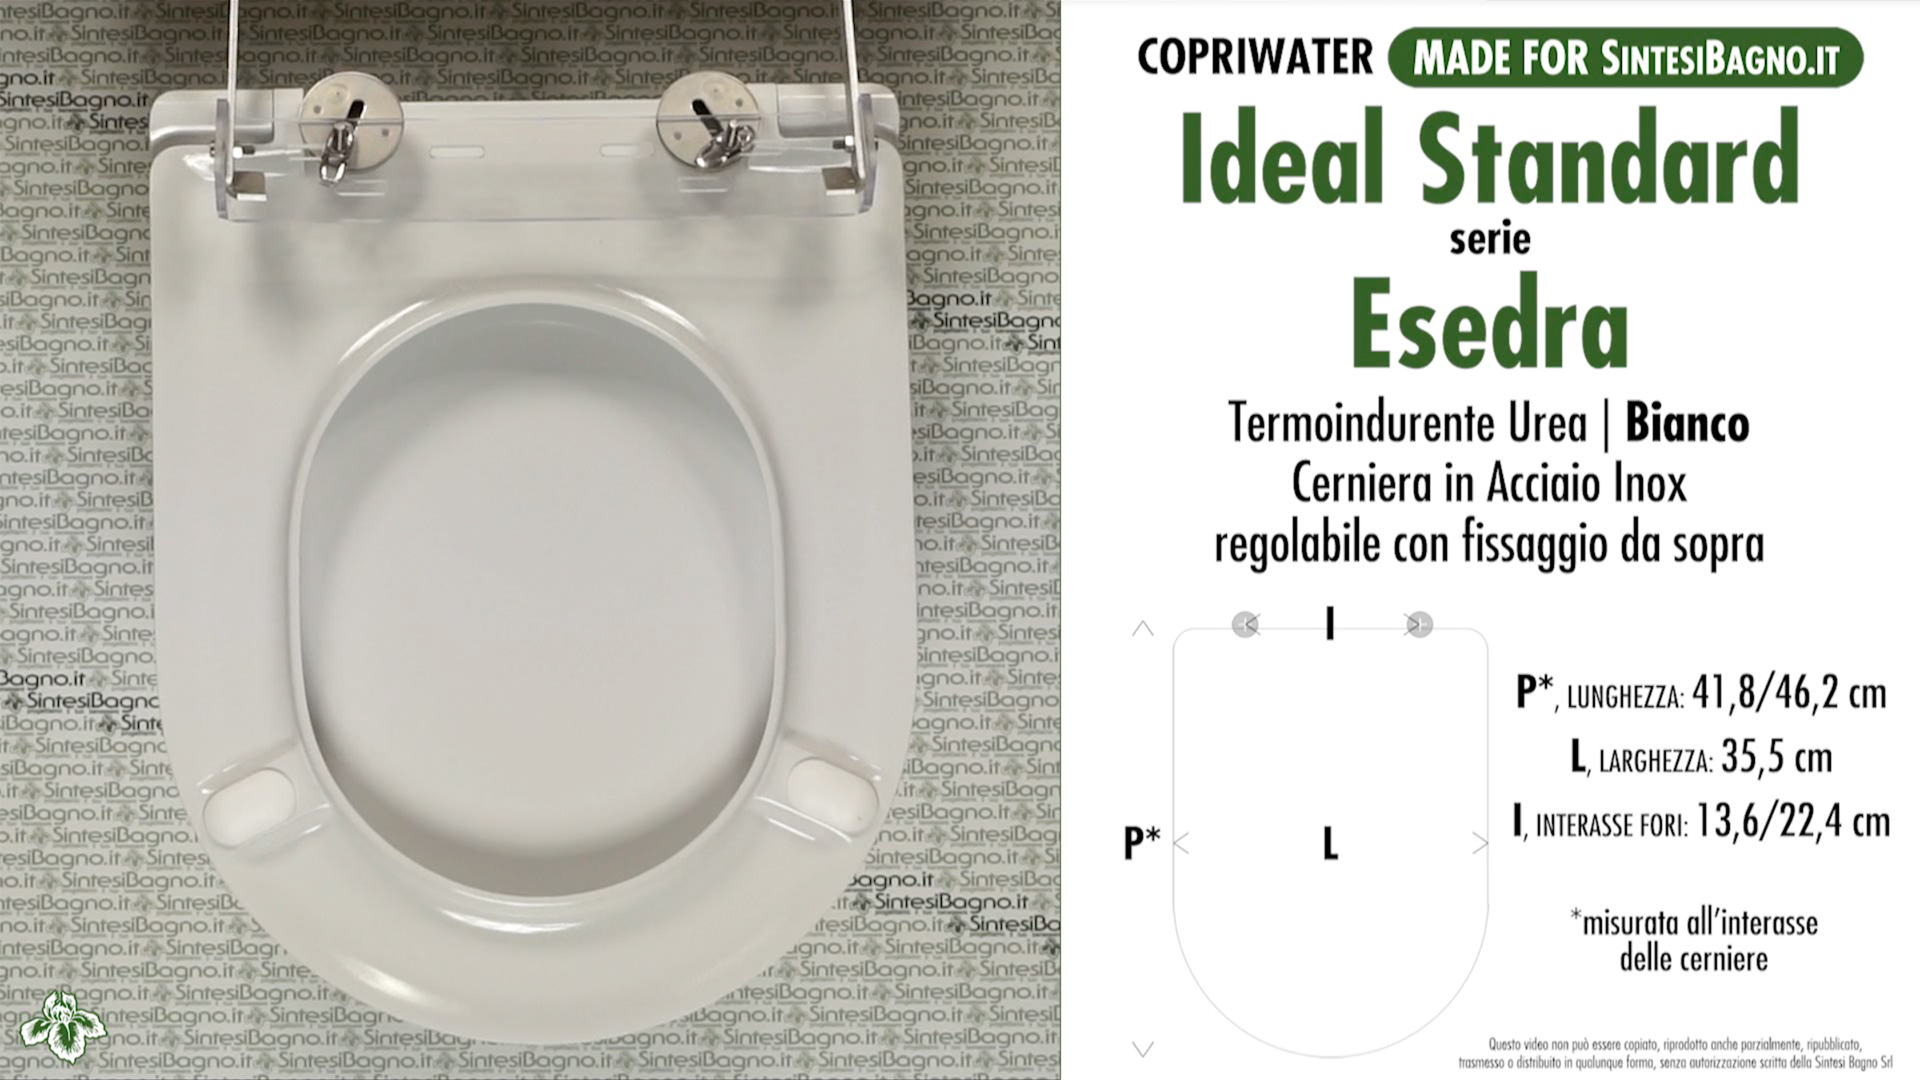 Sedile Copriwater Ideal Standard.Wc Seat Made For Wc Esedra Ideal Standard Model Soft Close Plus Quality Sintesibagno Shop Online